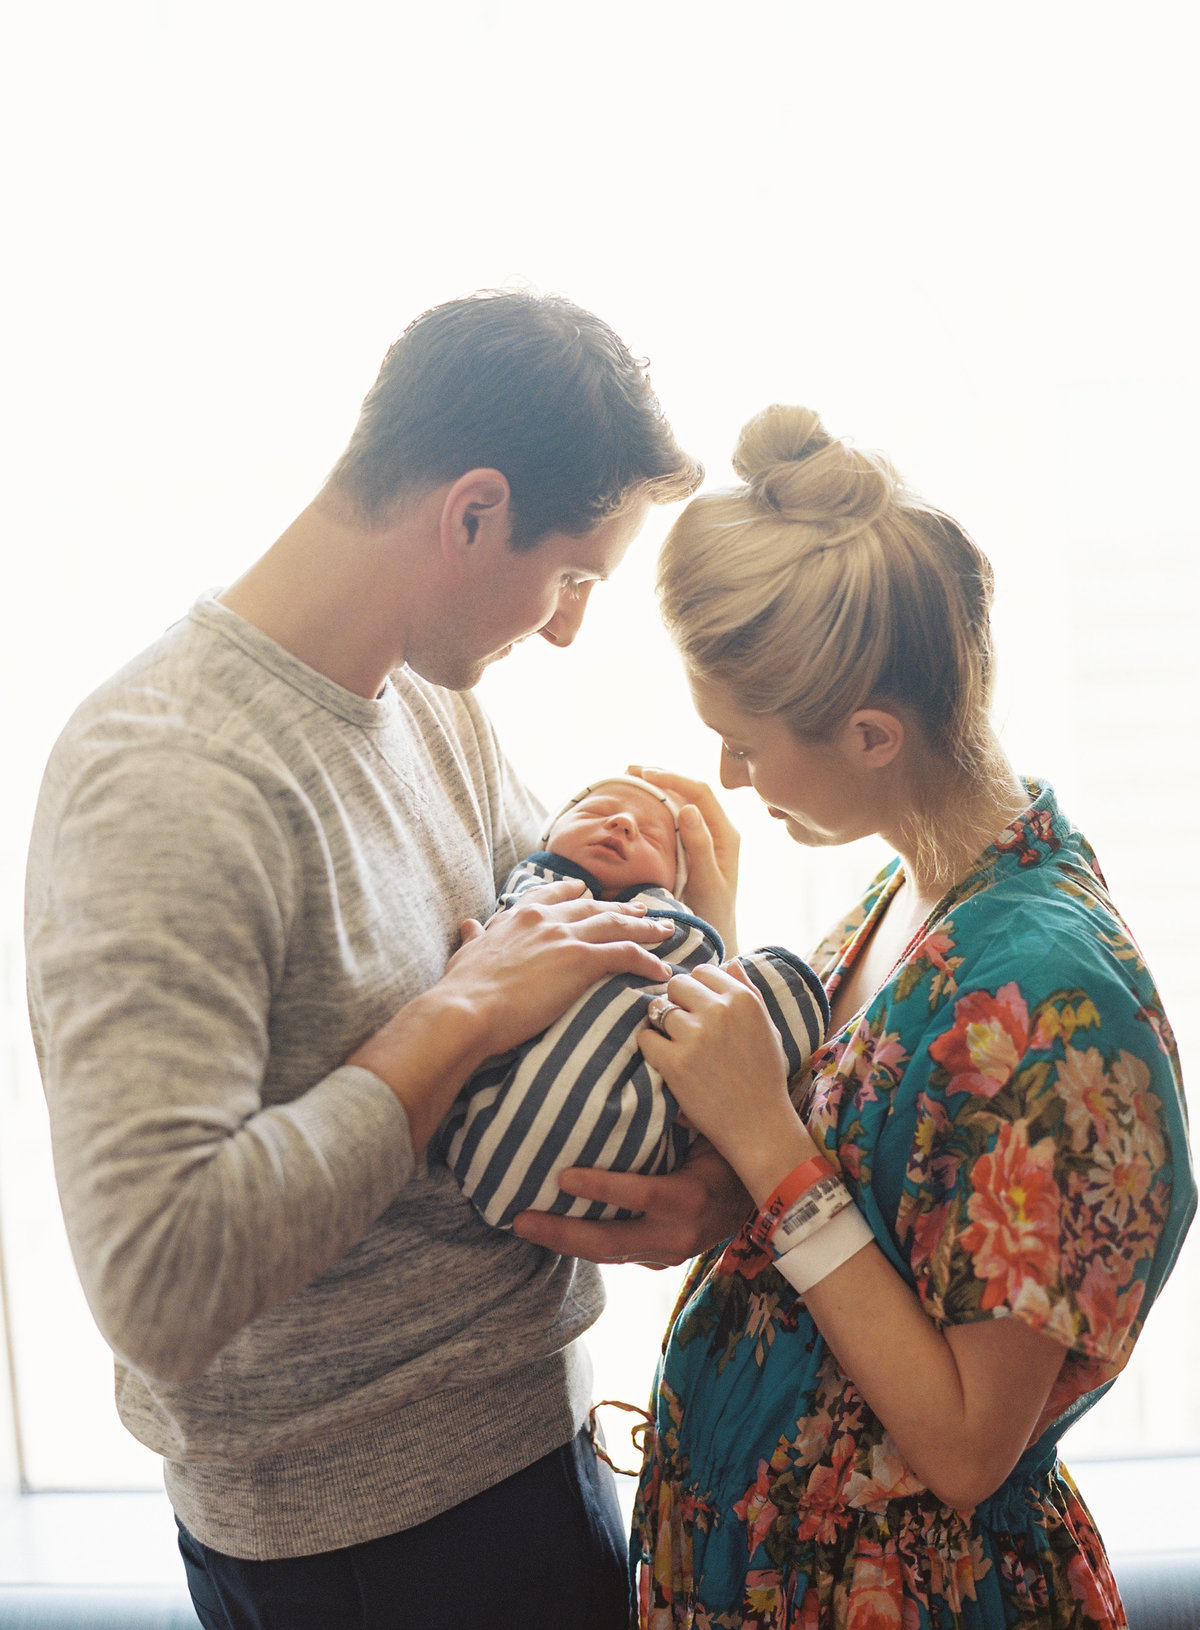 mom and dad with newborn baby at hospital